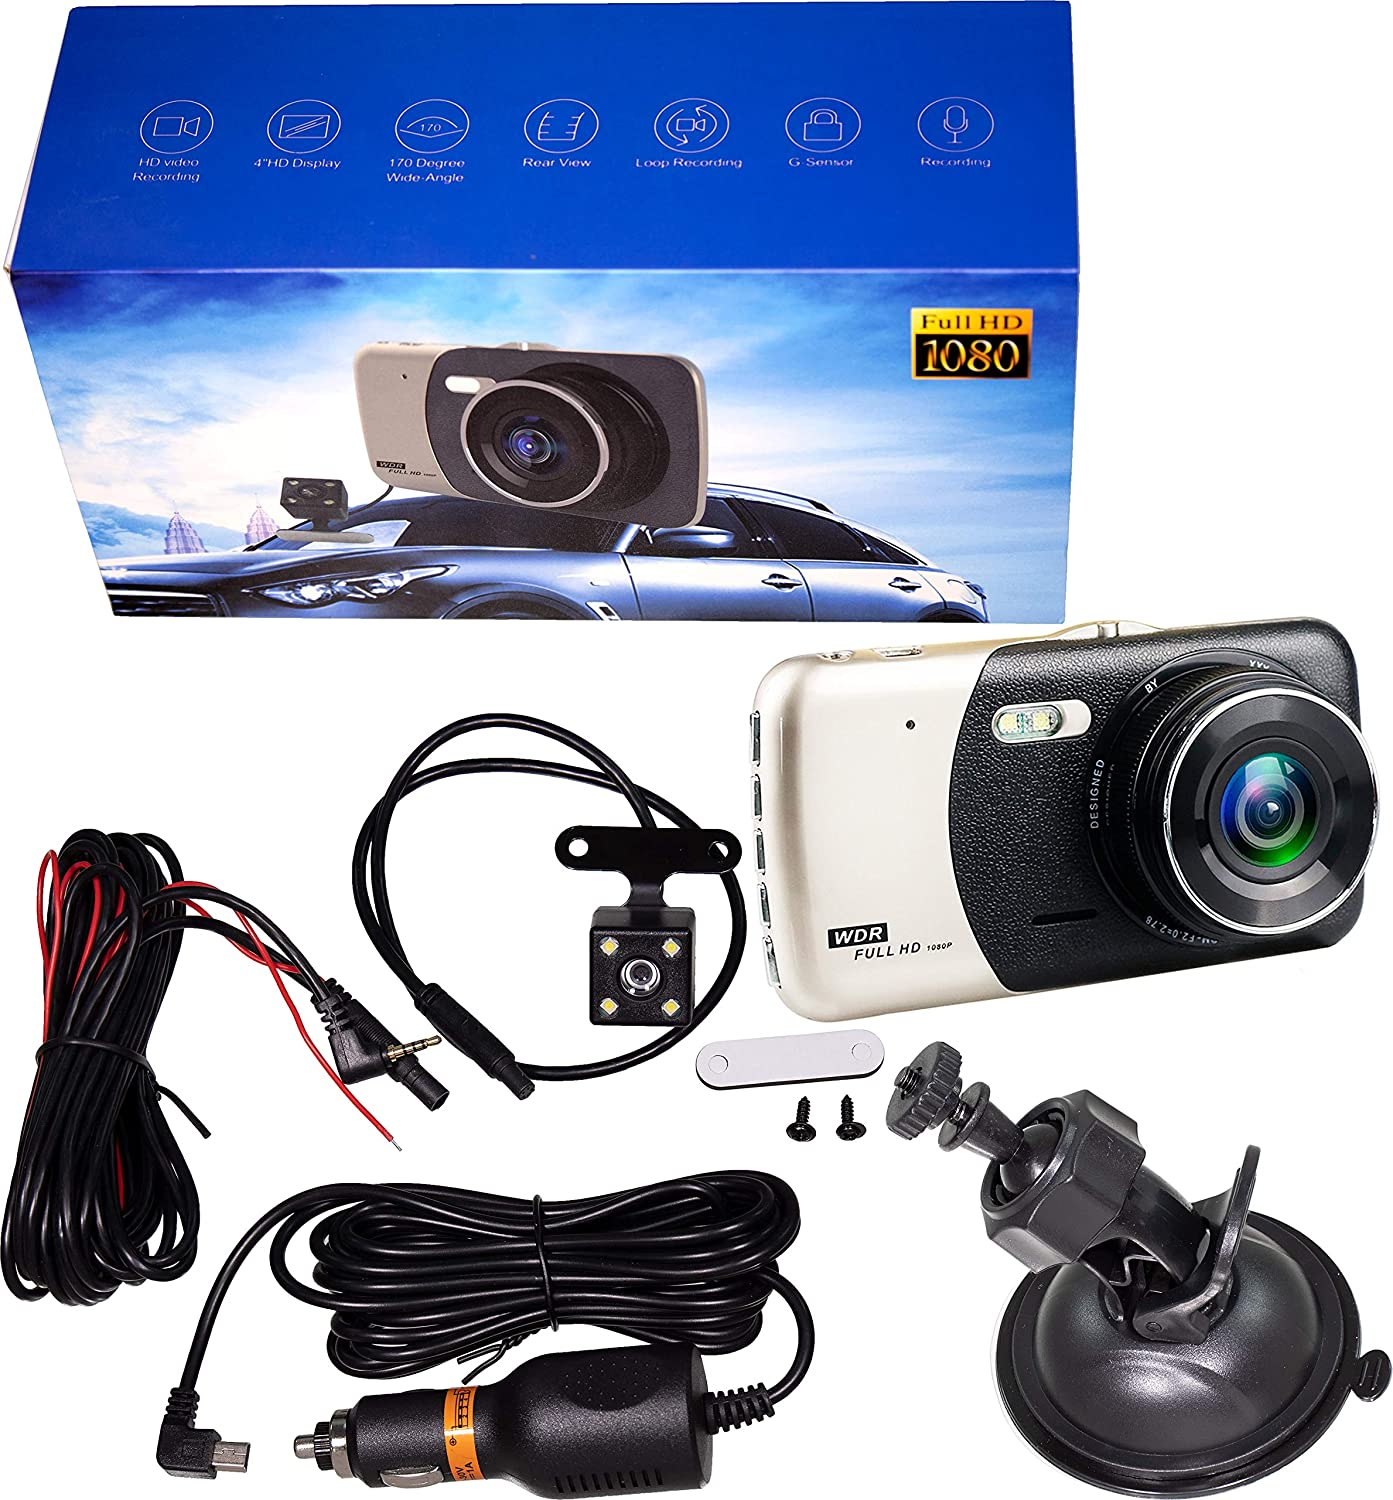 APDTY 141514 Universal 1080P Dual Rear Front And Dash or Backup 67% OFF of Animer and price revision fixed price